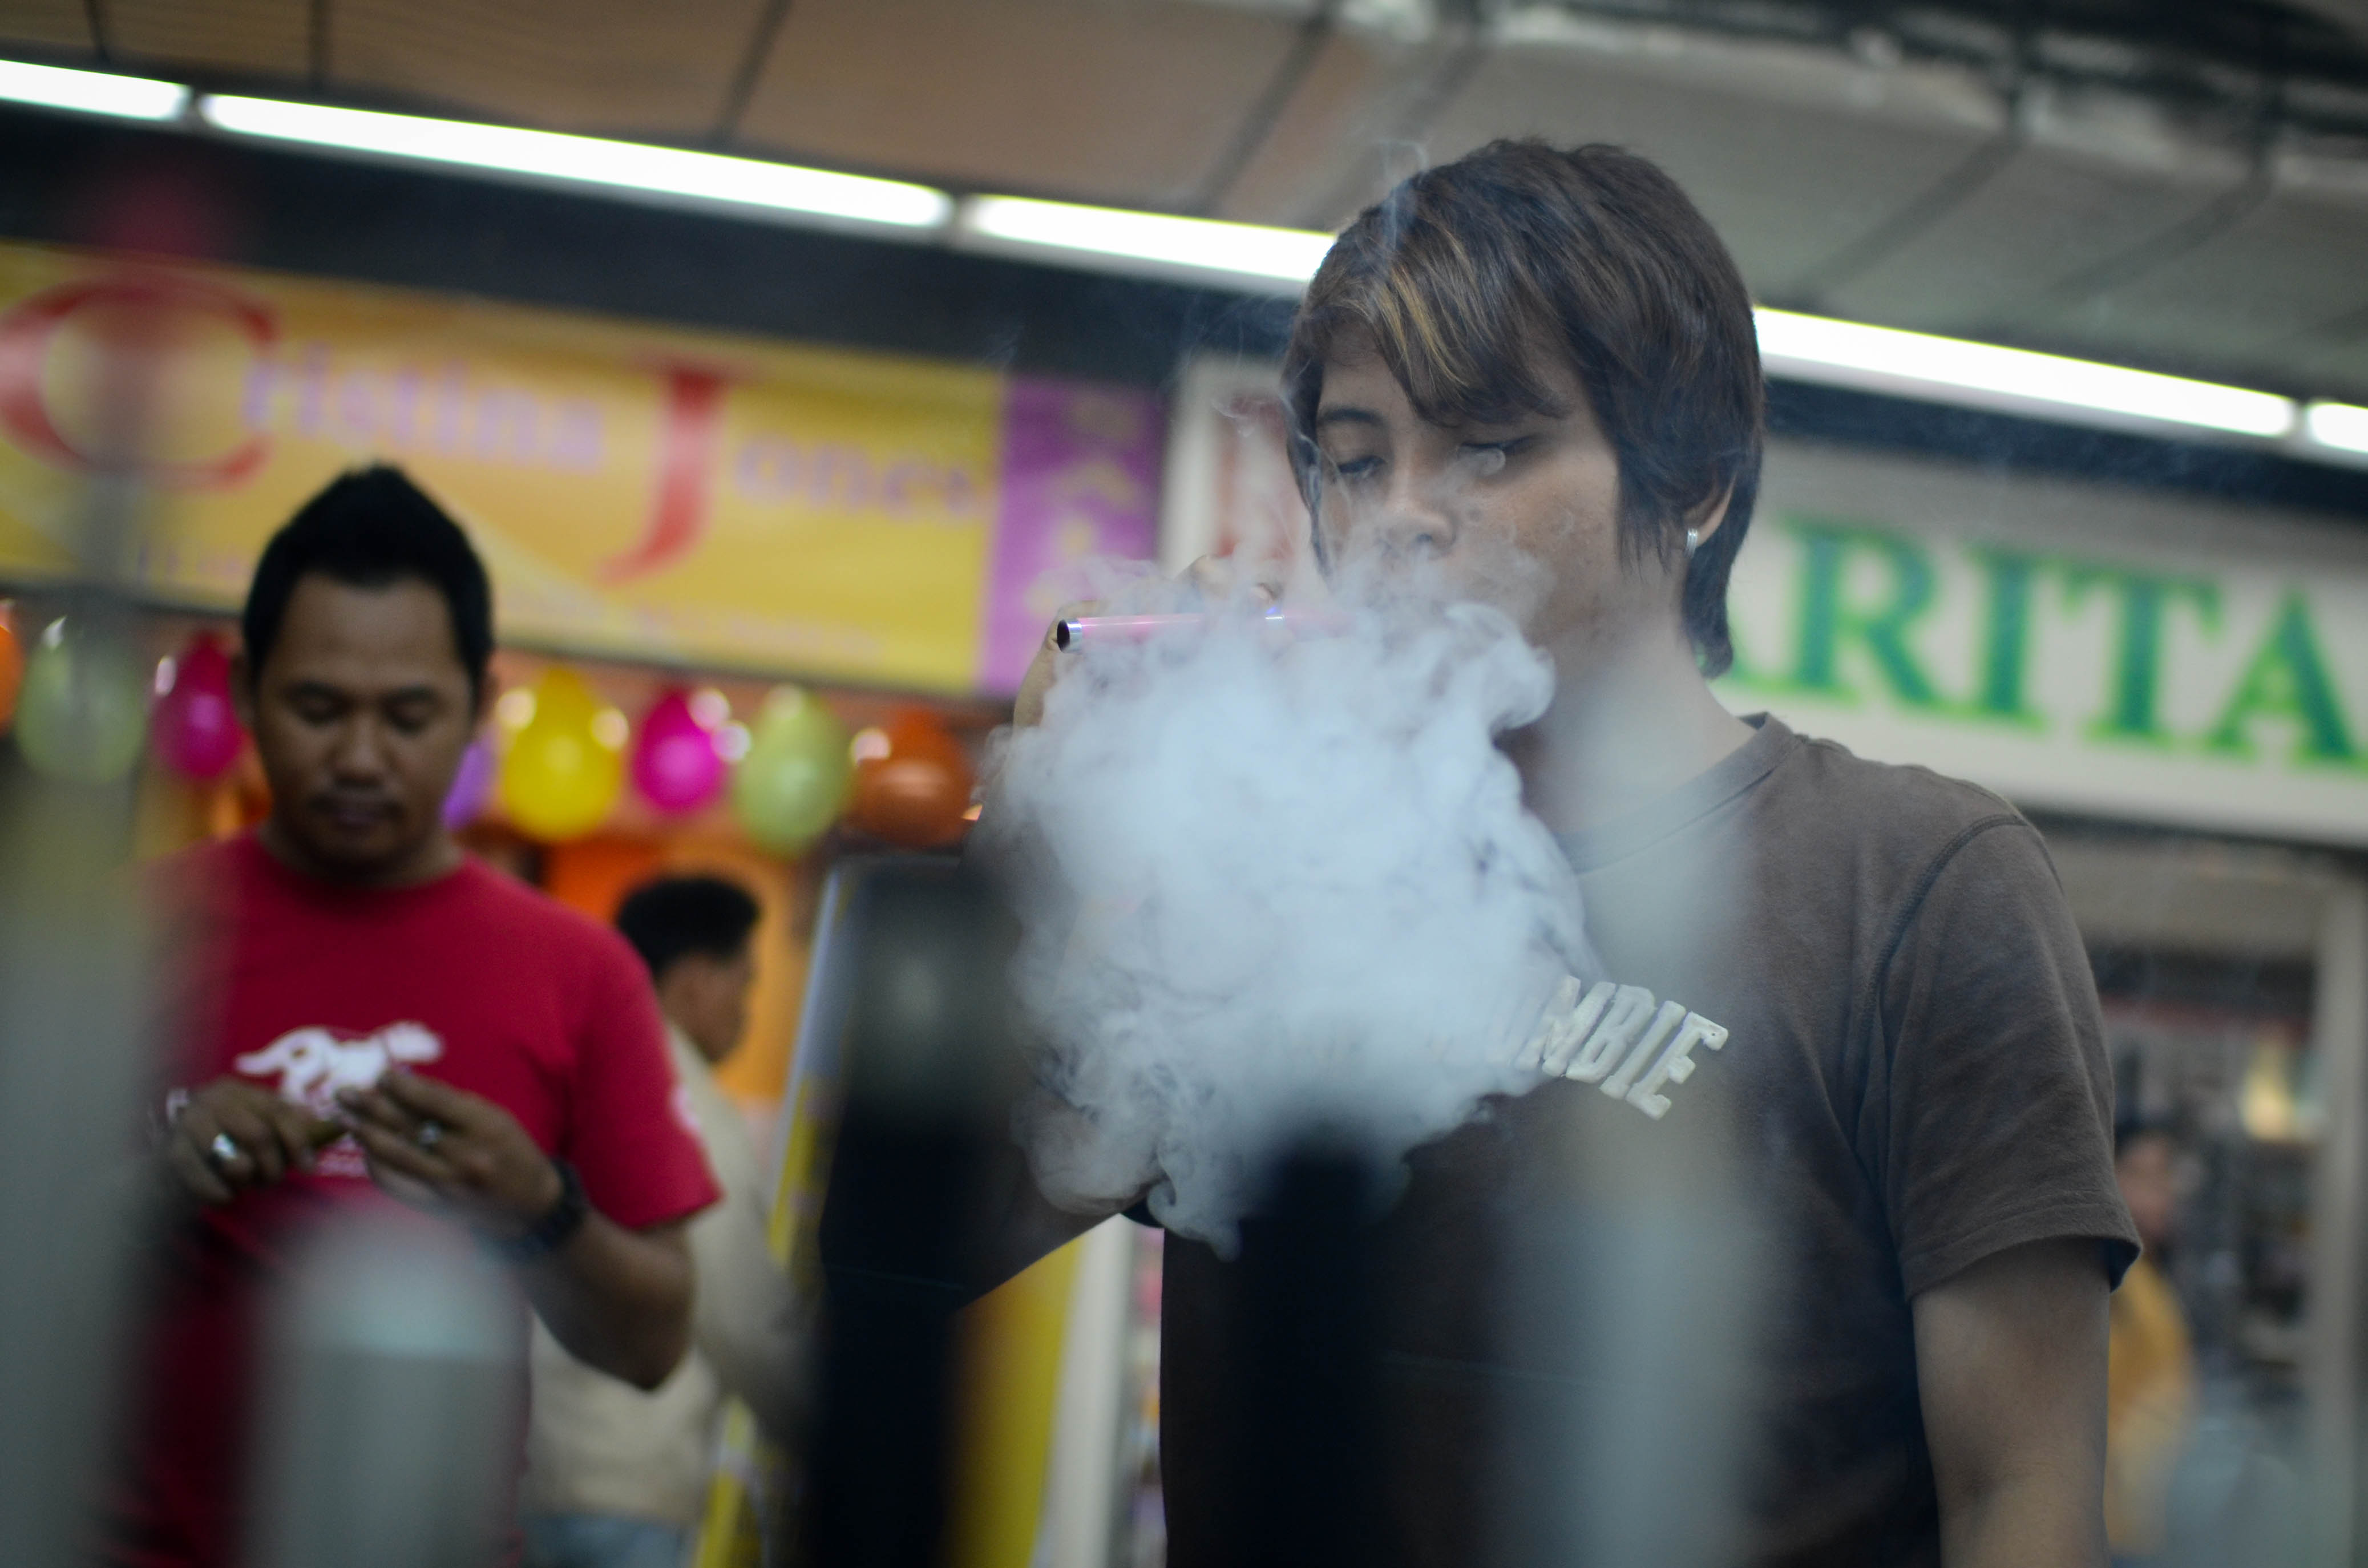 Consumers smoke electronic cigarettes at a mall on June 30, 2013 in Manila, Philippines.